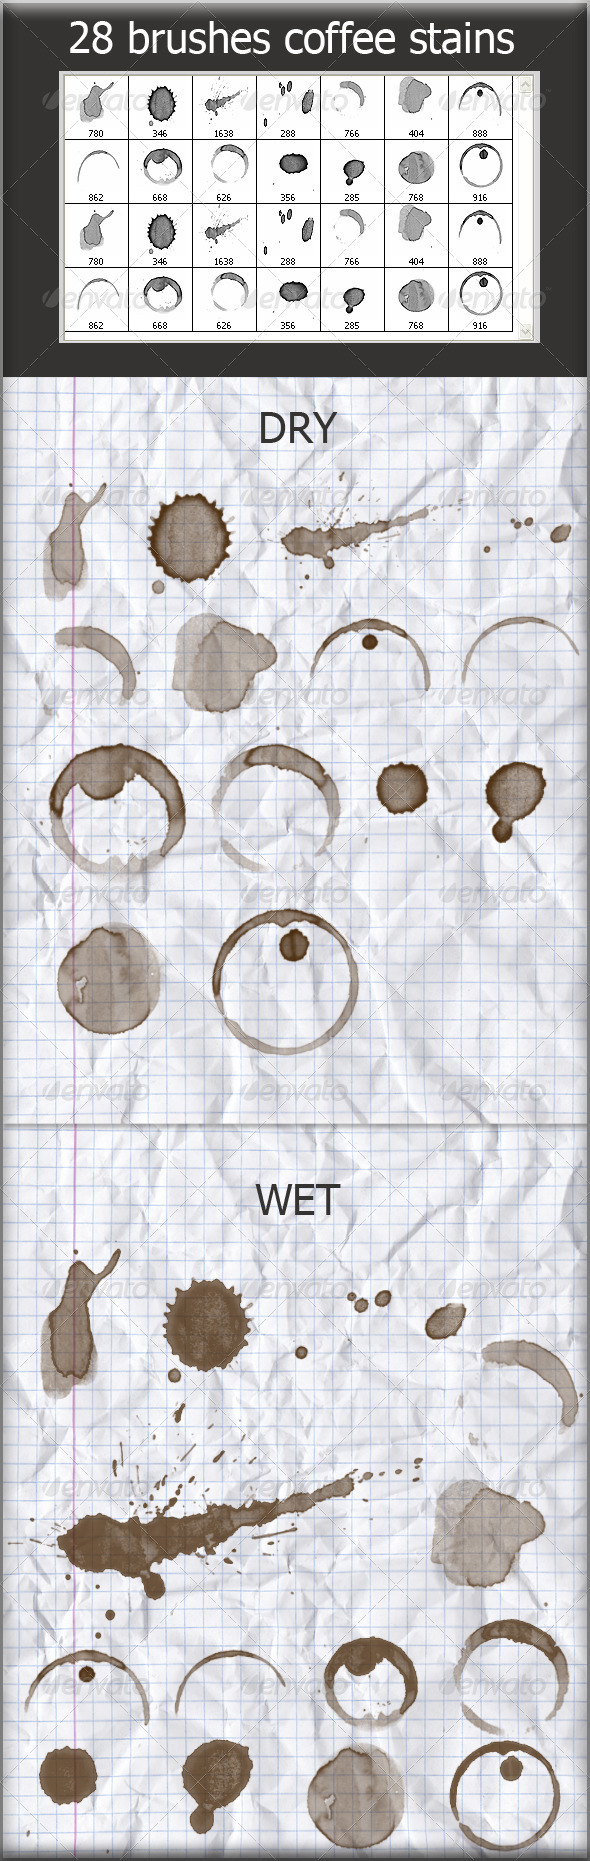 28 Brushes Coffee Stains (Wet and Dry) - Grunge Brushes